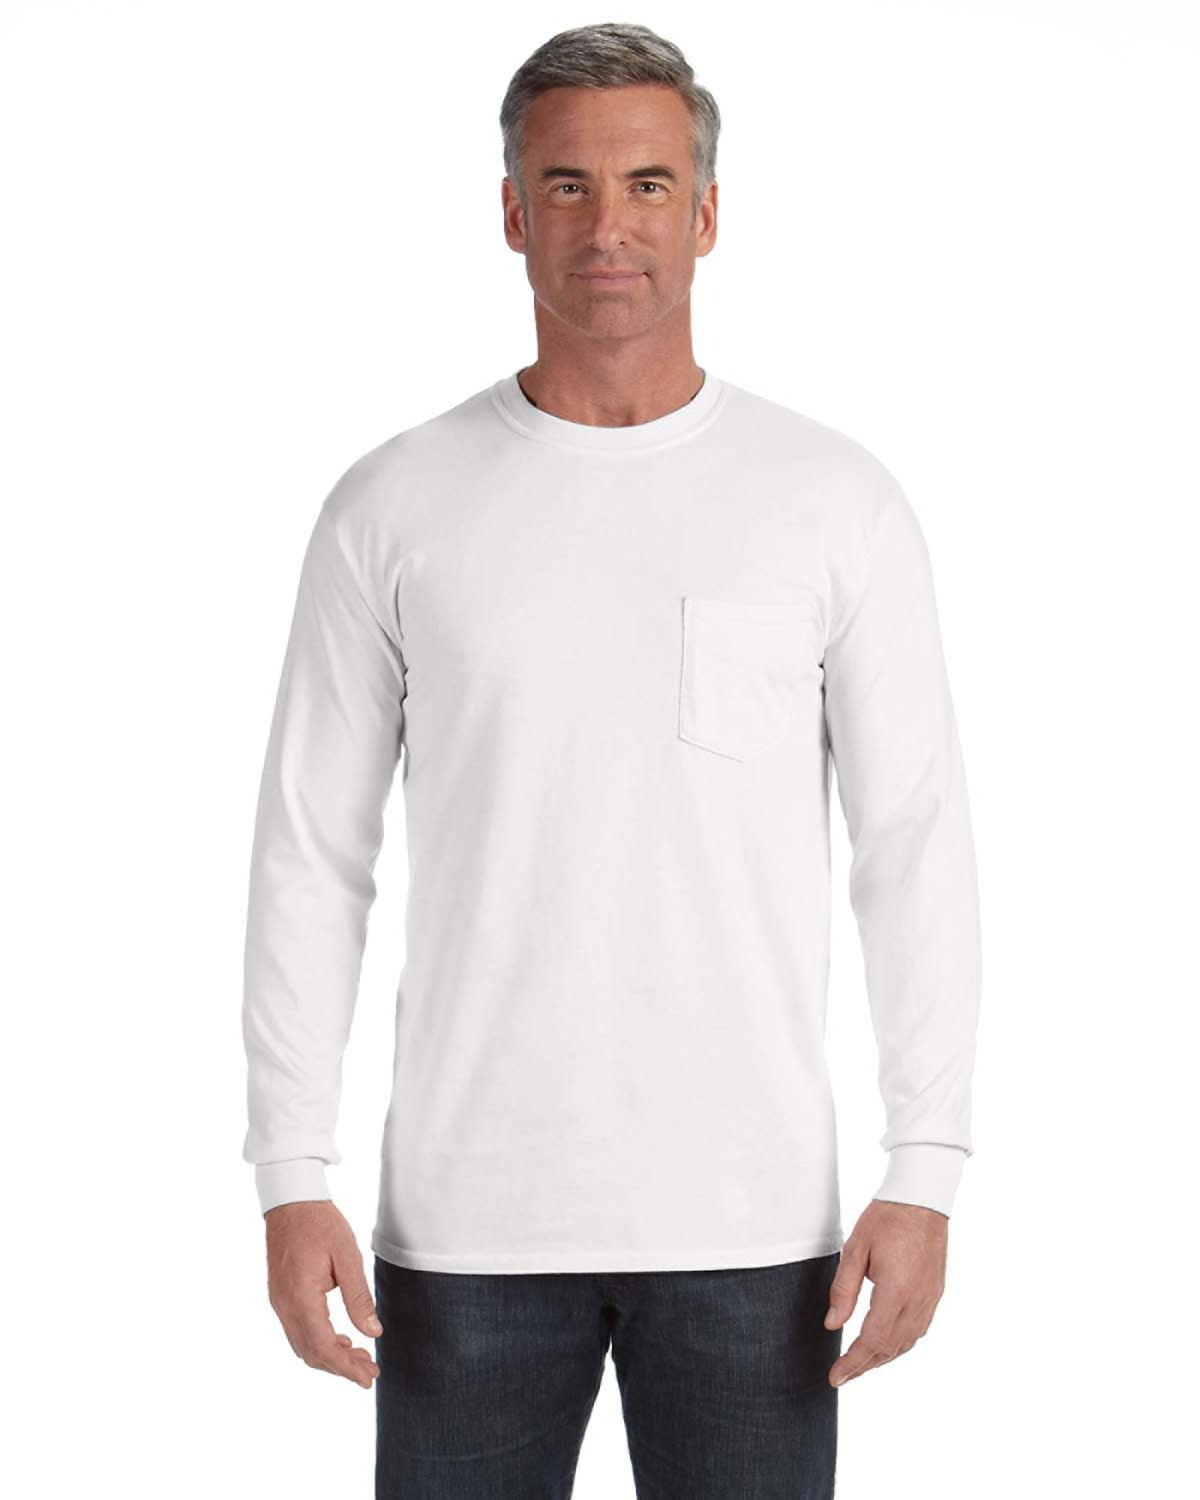 2fd6fb35bc4368 Comfort Colors C4410 - Long-Sleeve Pocket T-Shirt